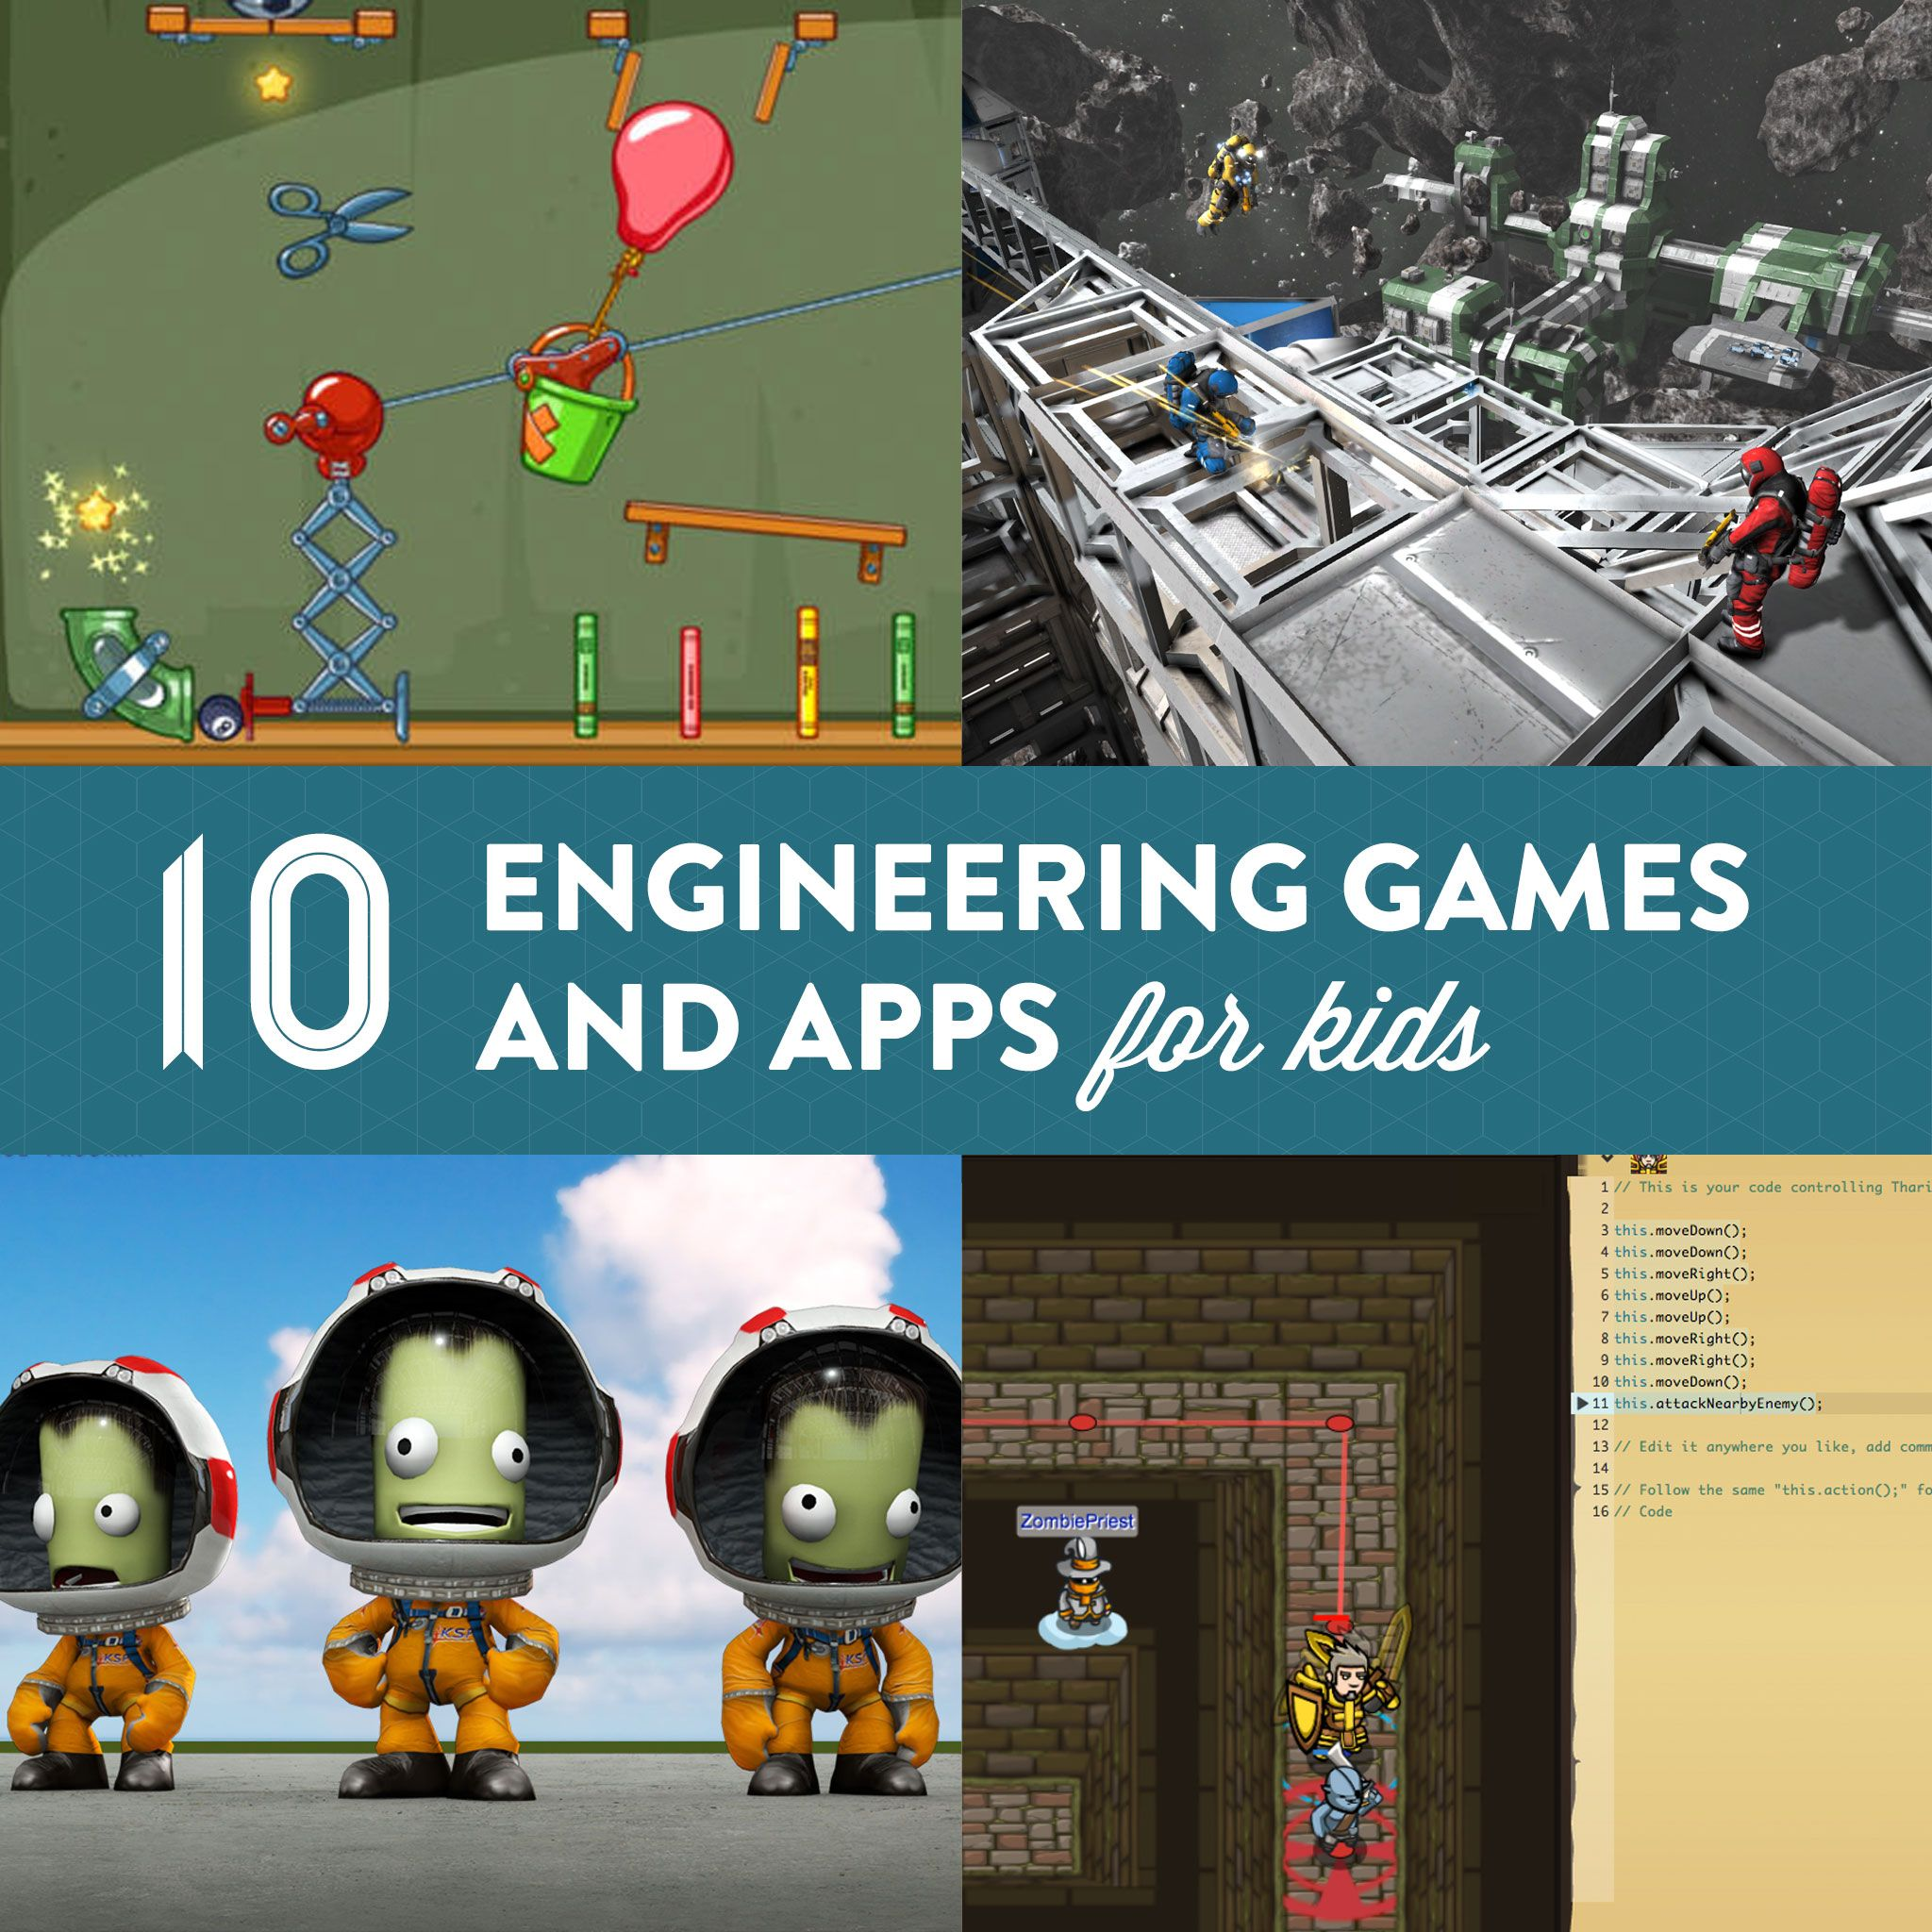 10 Engineering Games and Apps for Kids